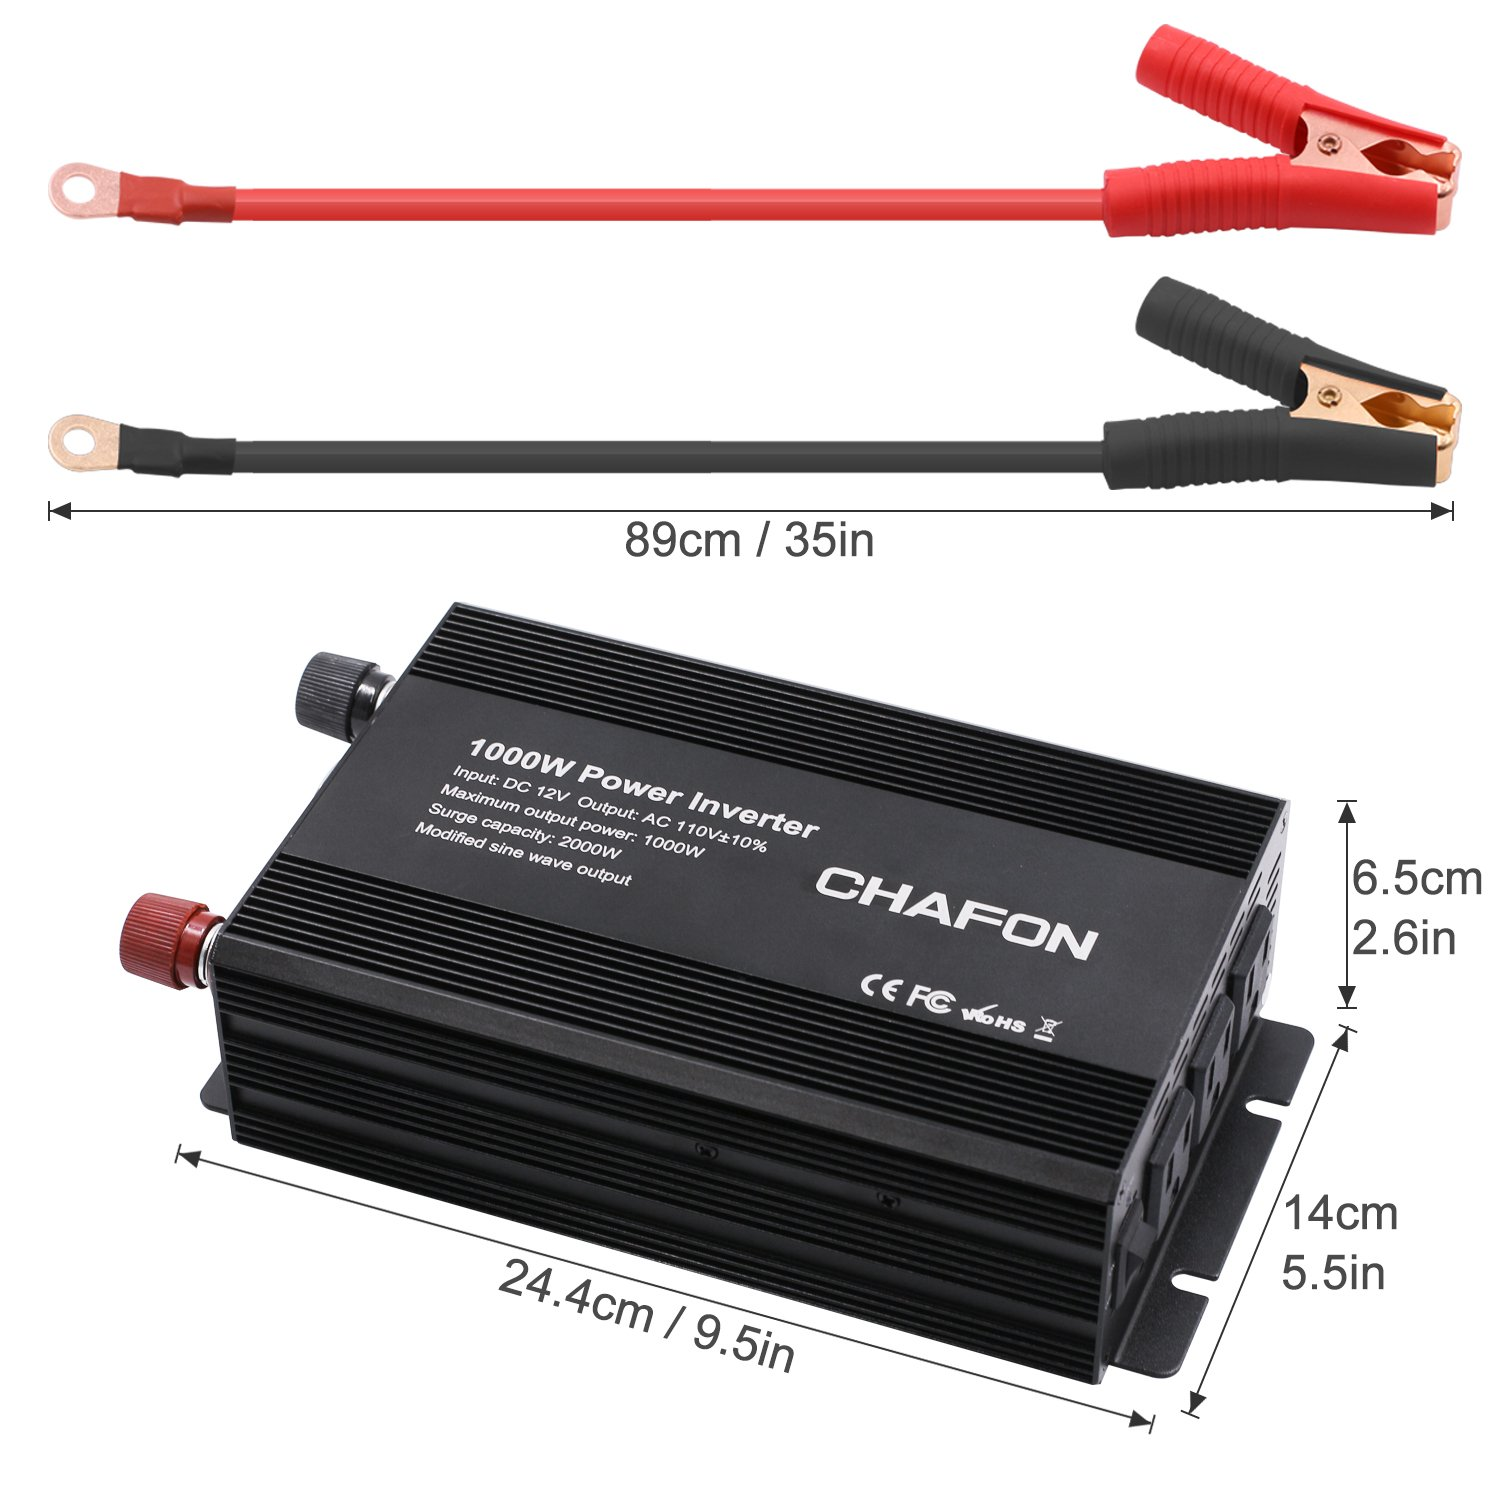 Chafon 1000W Power Inverter DC 12V to 110V with 3 AC Outlets Car Inverter for Household Appliances, RV Solar Kit in case Emergency, Outage and Hurricane - Black by CHAFON (Image #2)